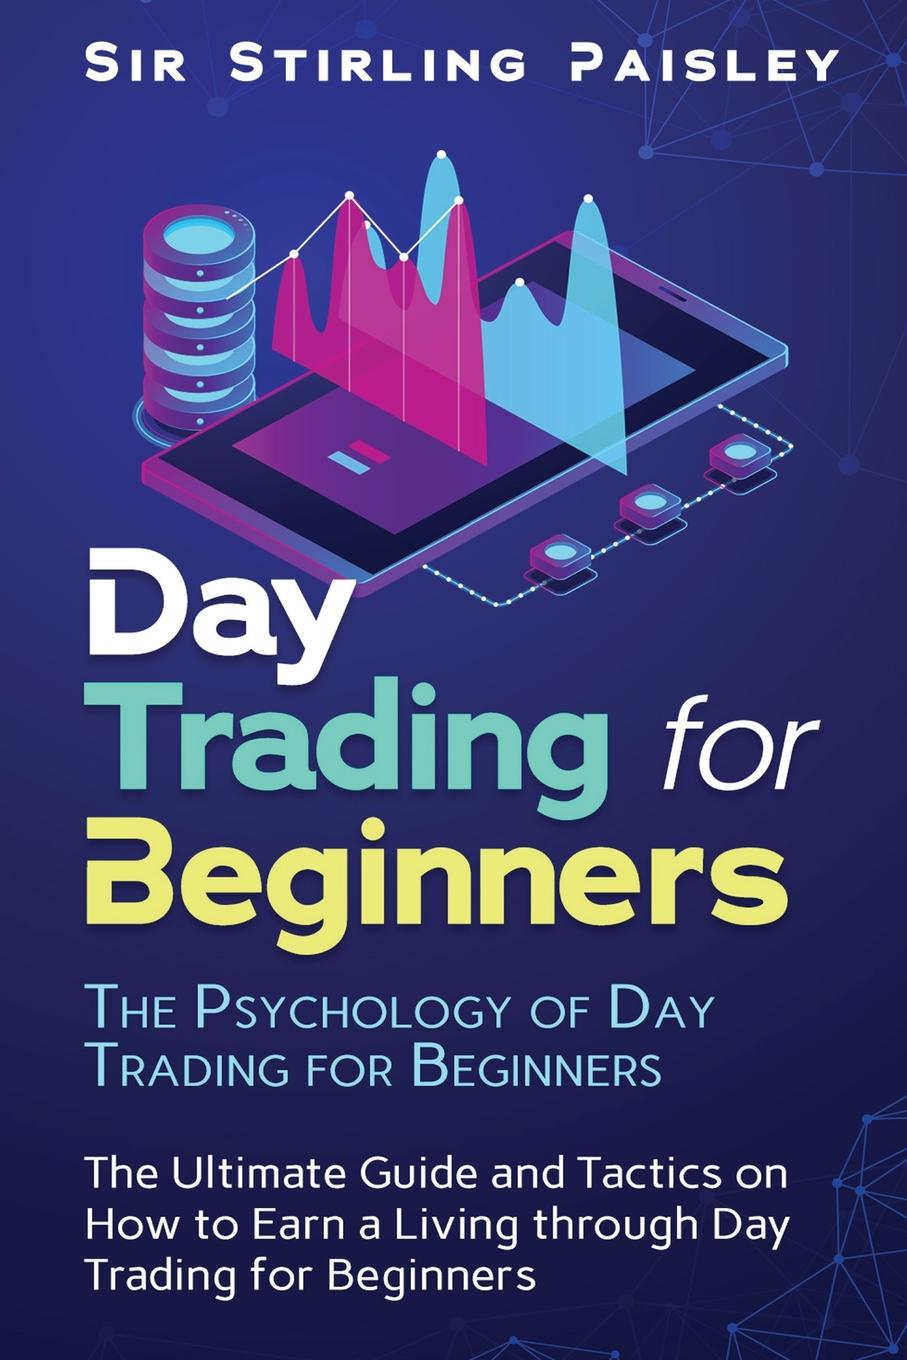 Sir Stirling Paisley Day Trading for Beginners. The Psychology of Day Trading for Beginners: The Ultimate Guide and Tactics on How to Earn a Living through Day Trading for Beginners ann c logue day trading for dummies